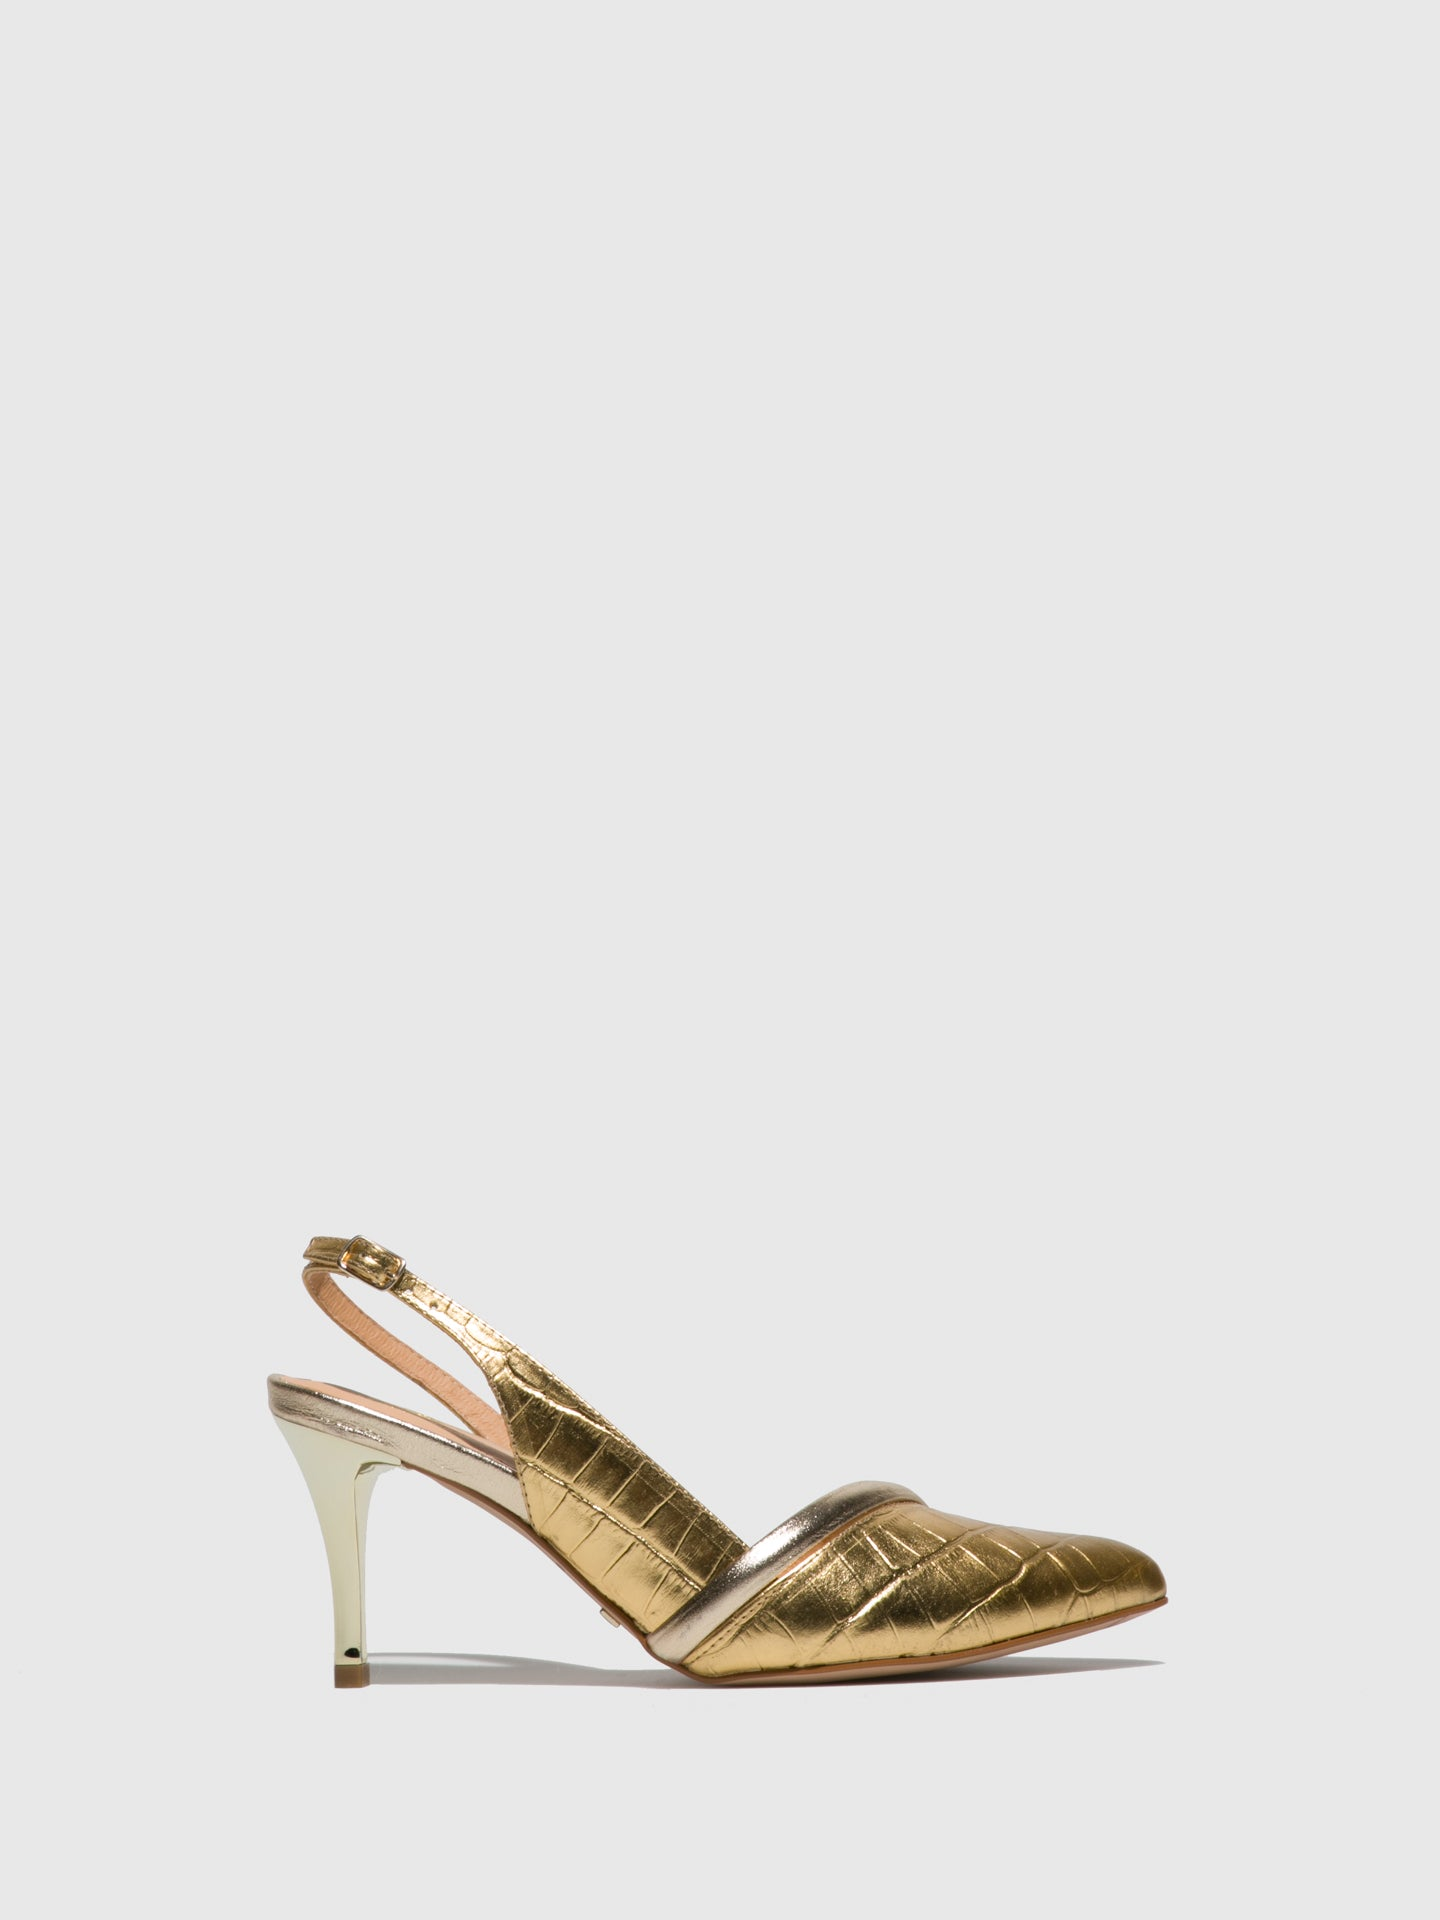 Parodi Passion Gold Sling-Back Sandals